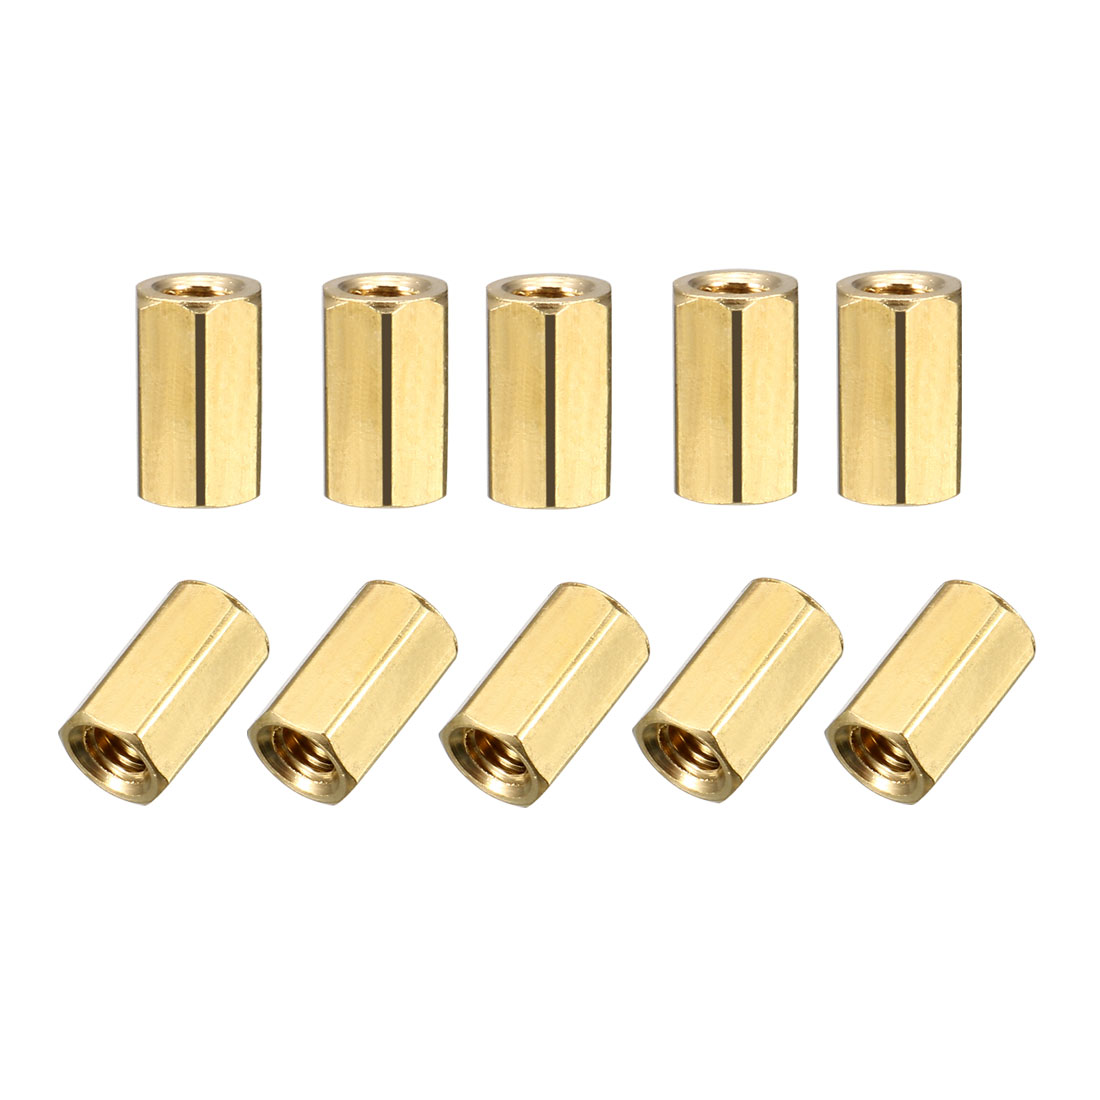 M3 x 8mm Female Threaded Brass Hex Standoff Pillar Rod Spacer Coupler Nut 25pcs